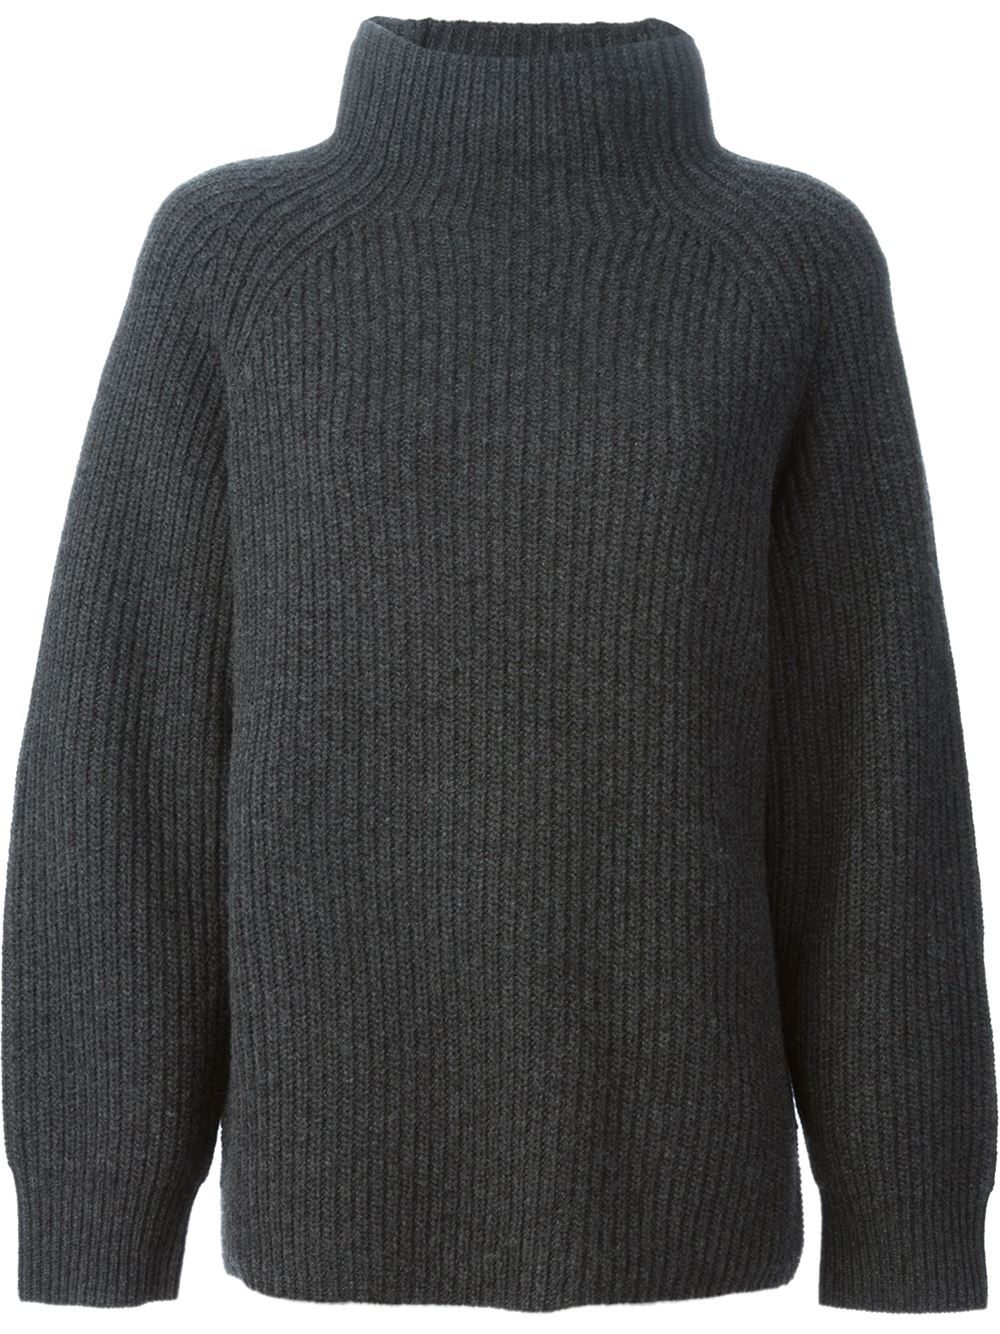 Theory Ribbed Turtle Neck Sweater in Gray | Lyst